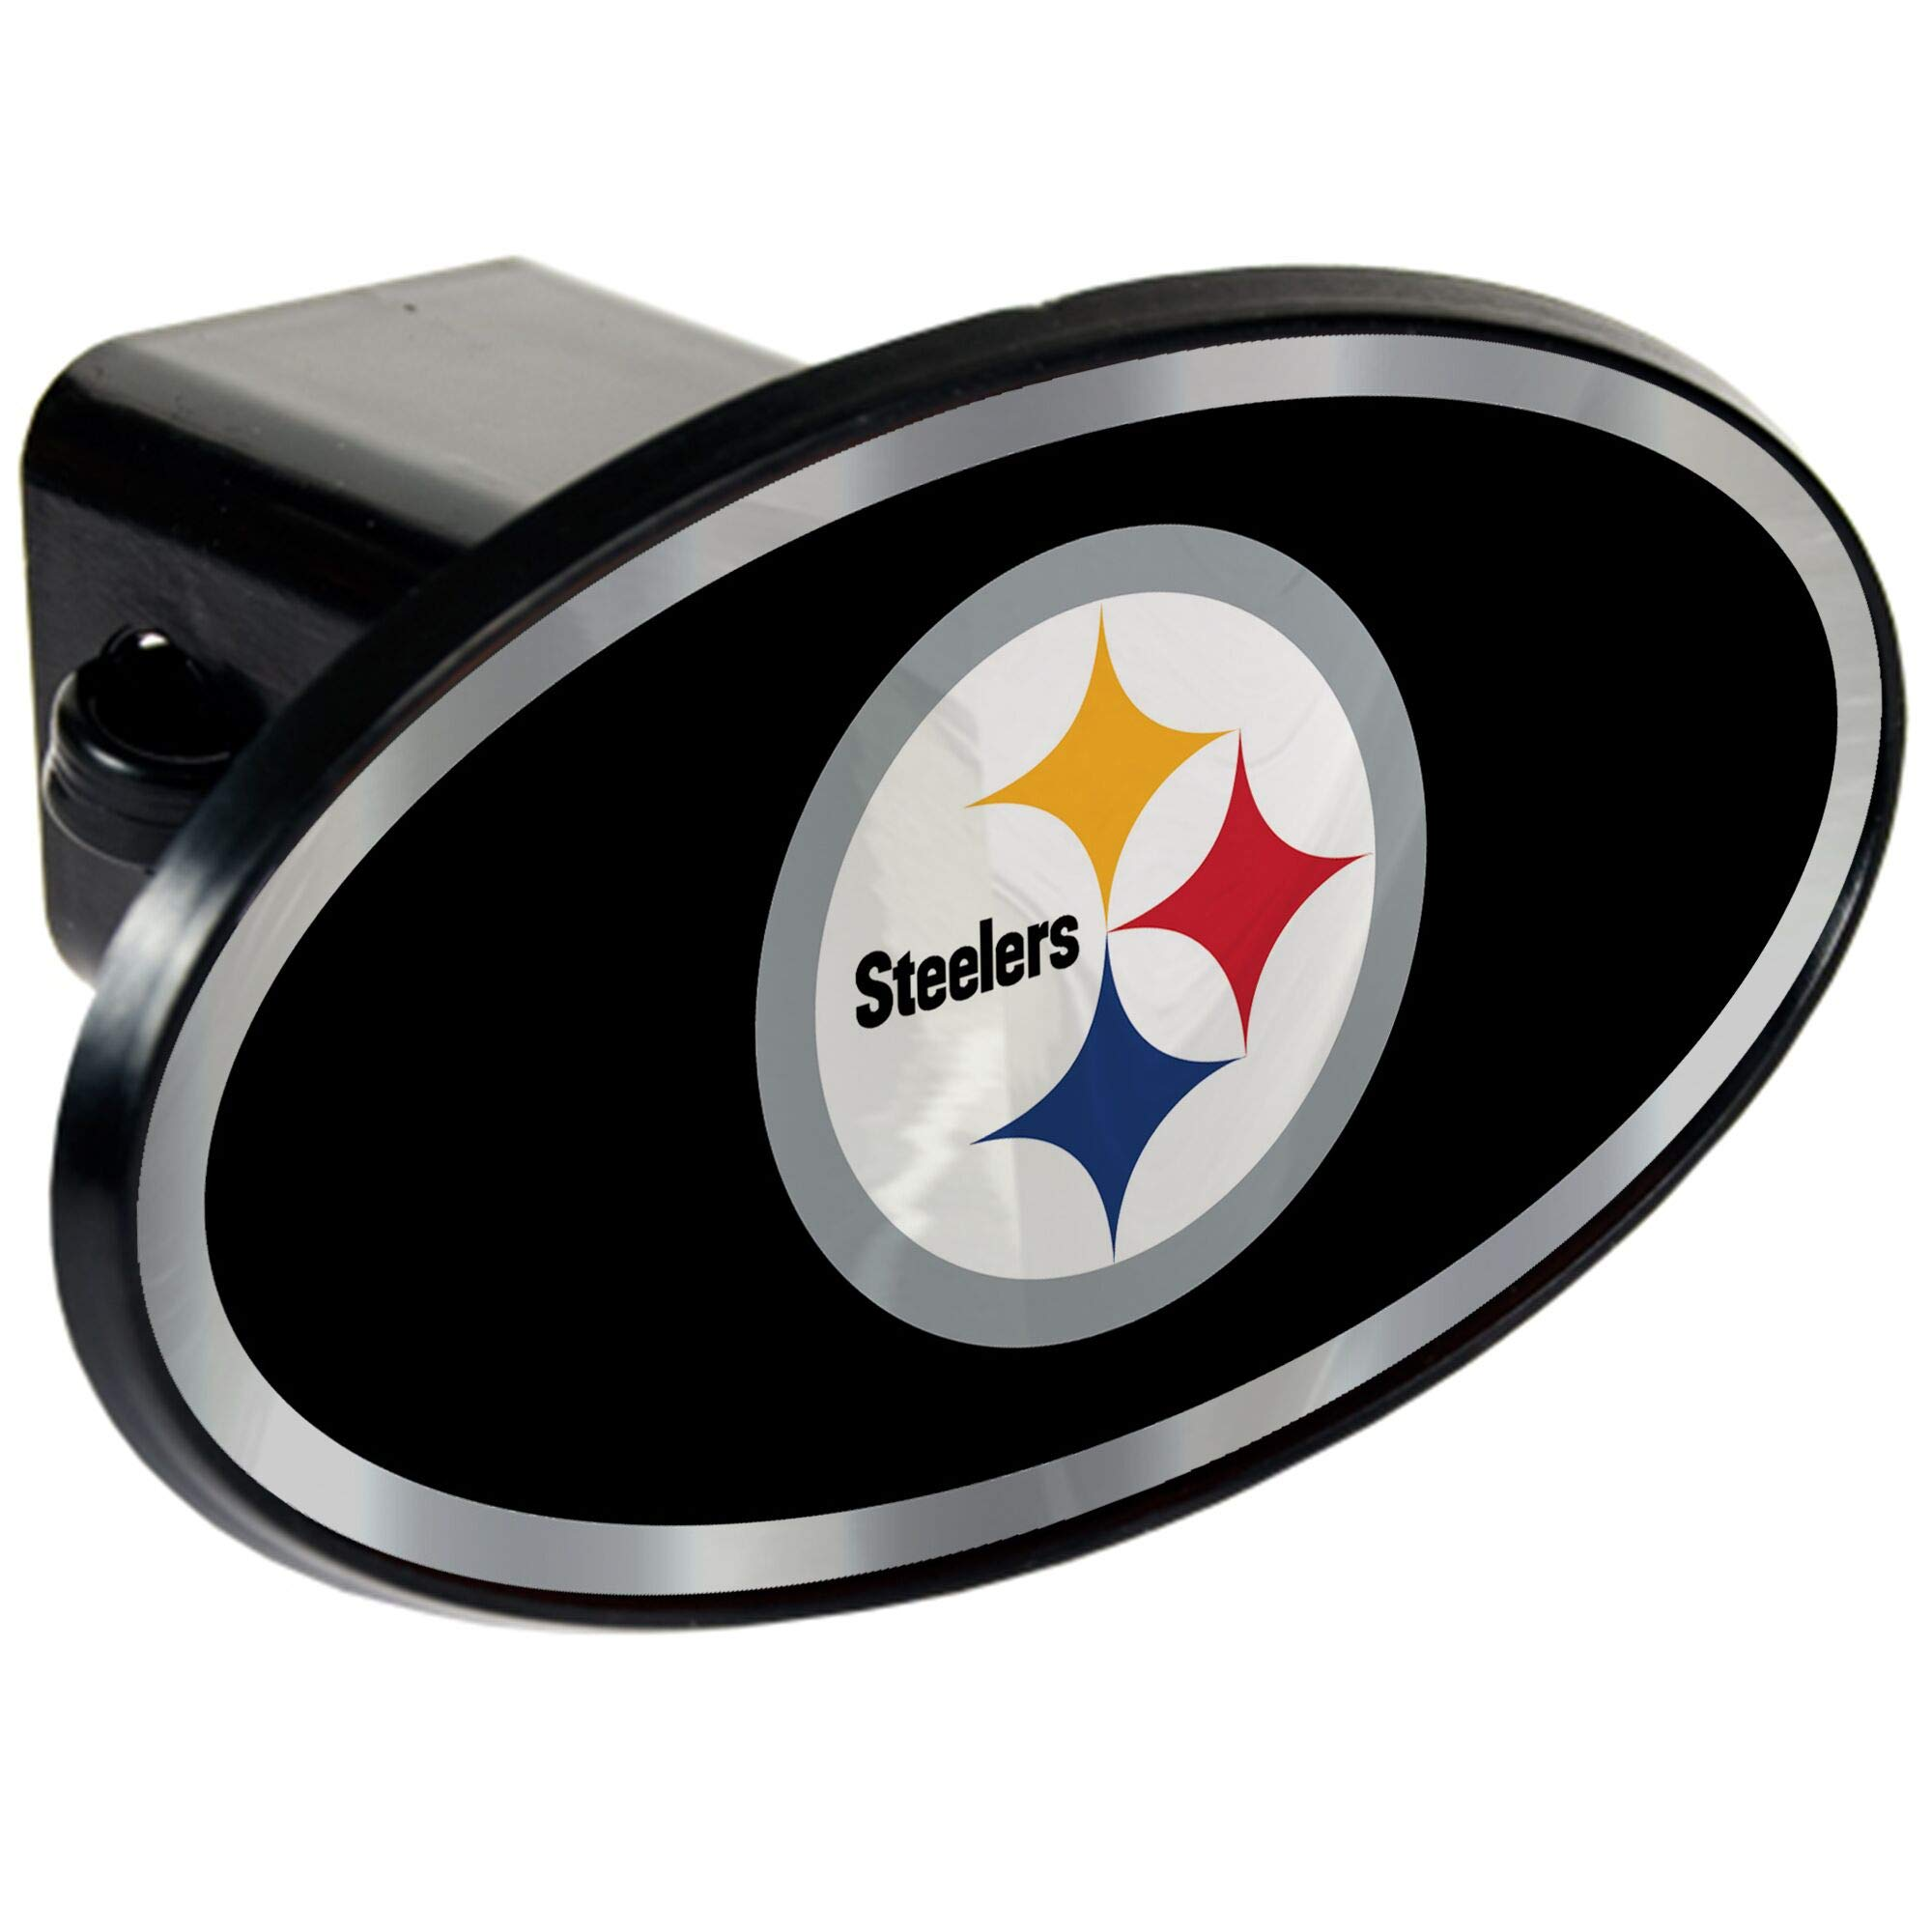 NFL Pittsburgh Steelers Tow Hitch Cover Plug w/pin for Car-Truck-SUV 2'' Receiver by Quality Hitch Covers